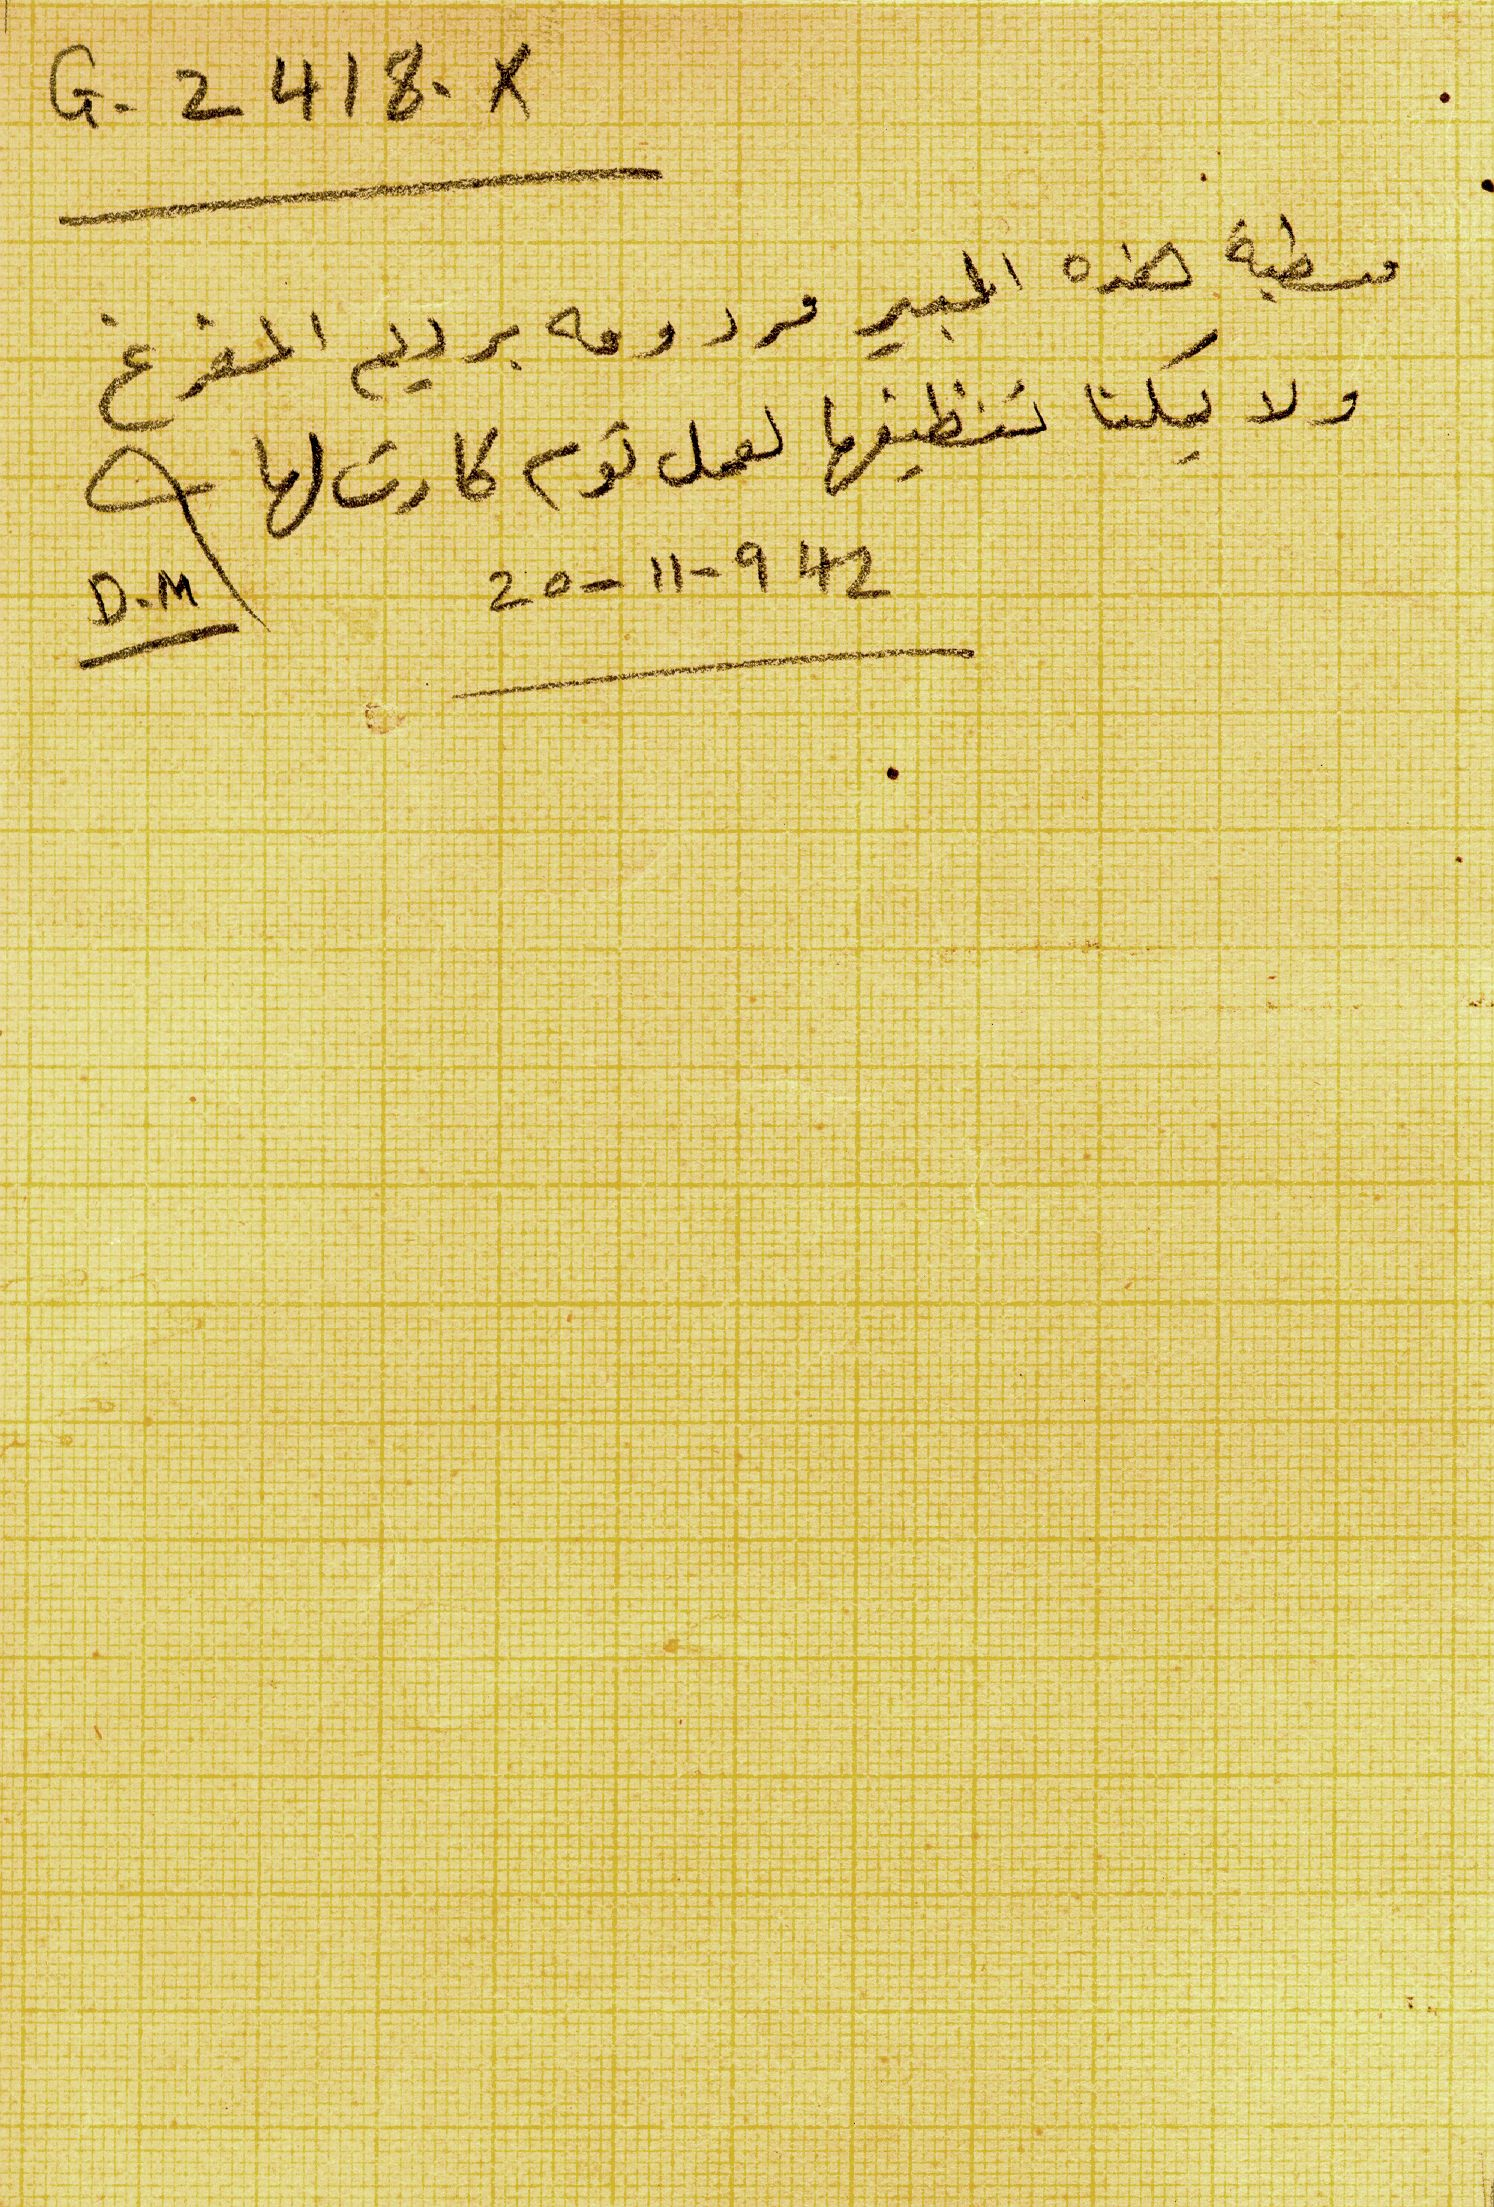 Notes: G 2418, Shaft X, notes (in Arabic)